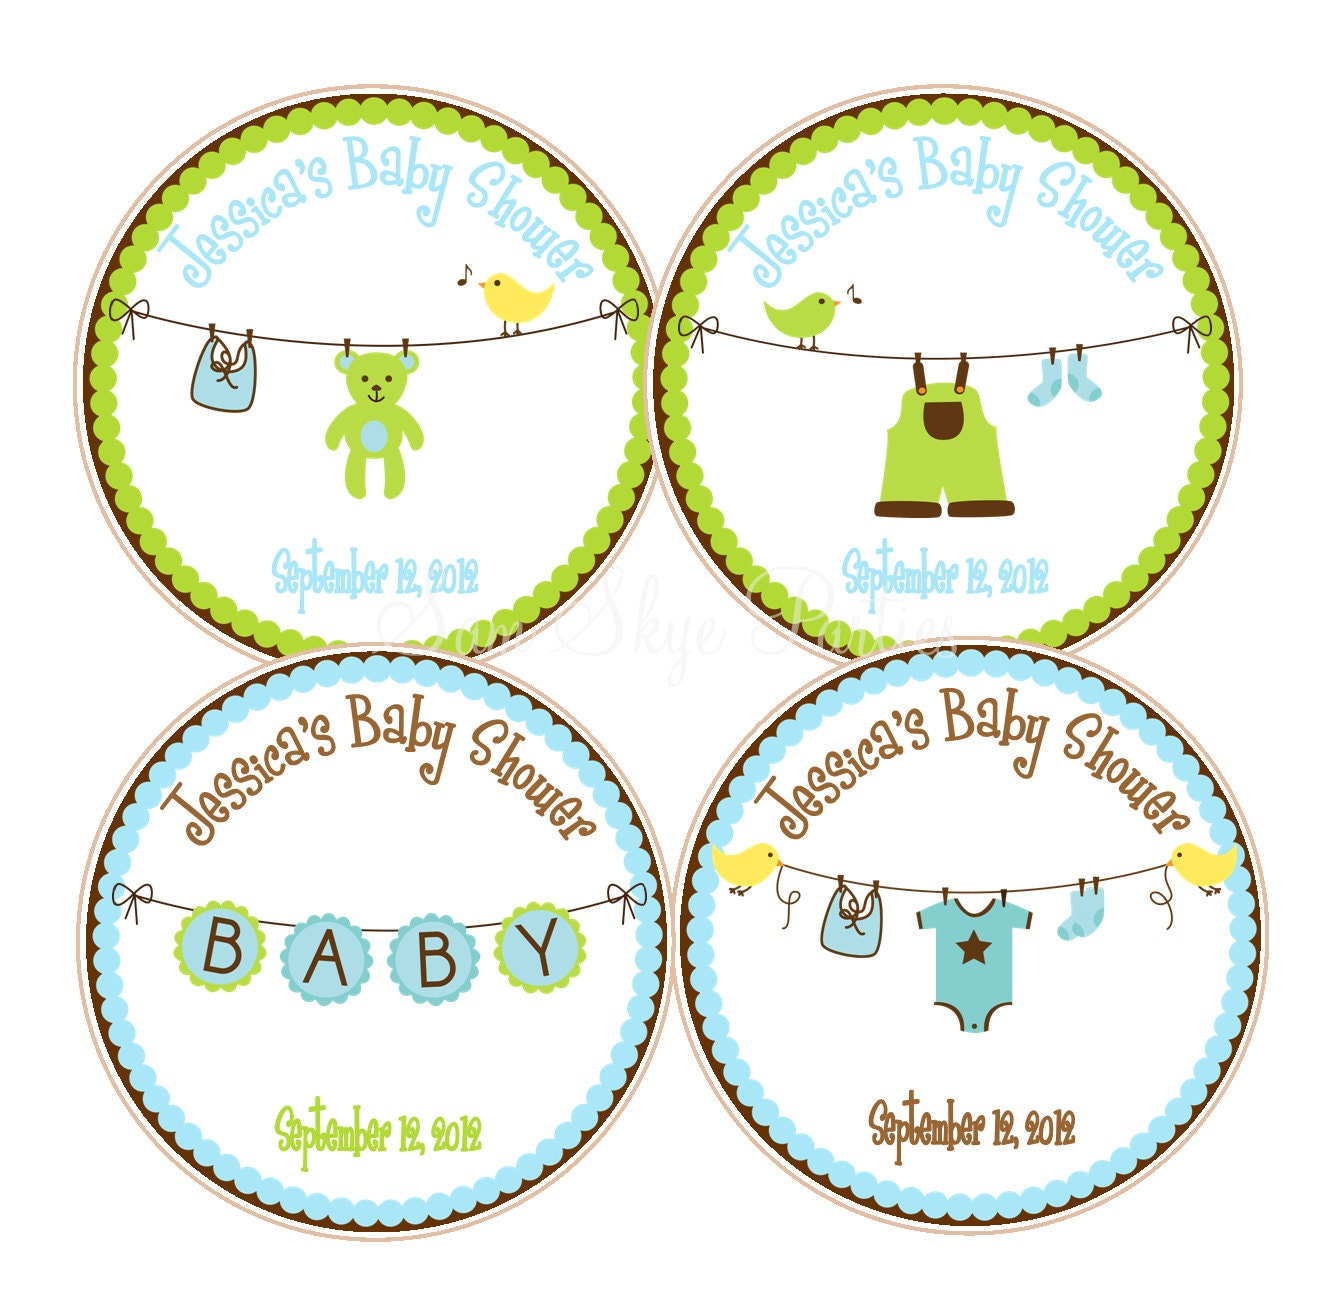 Baby Shower Tags Images ~ Cute boy baby shower favor tags showers or st birthday